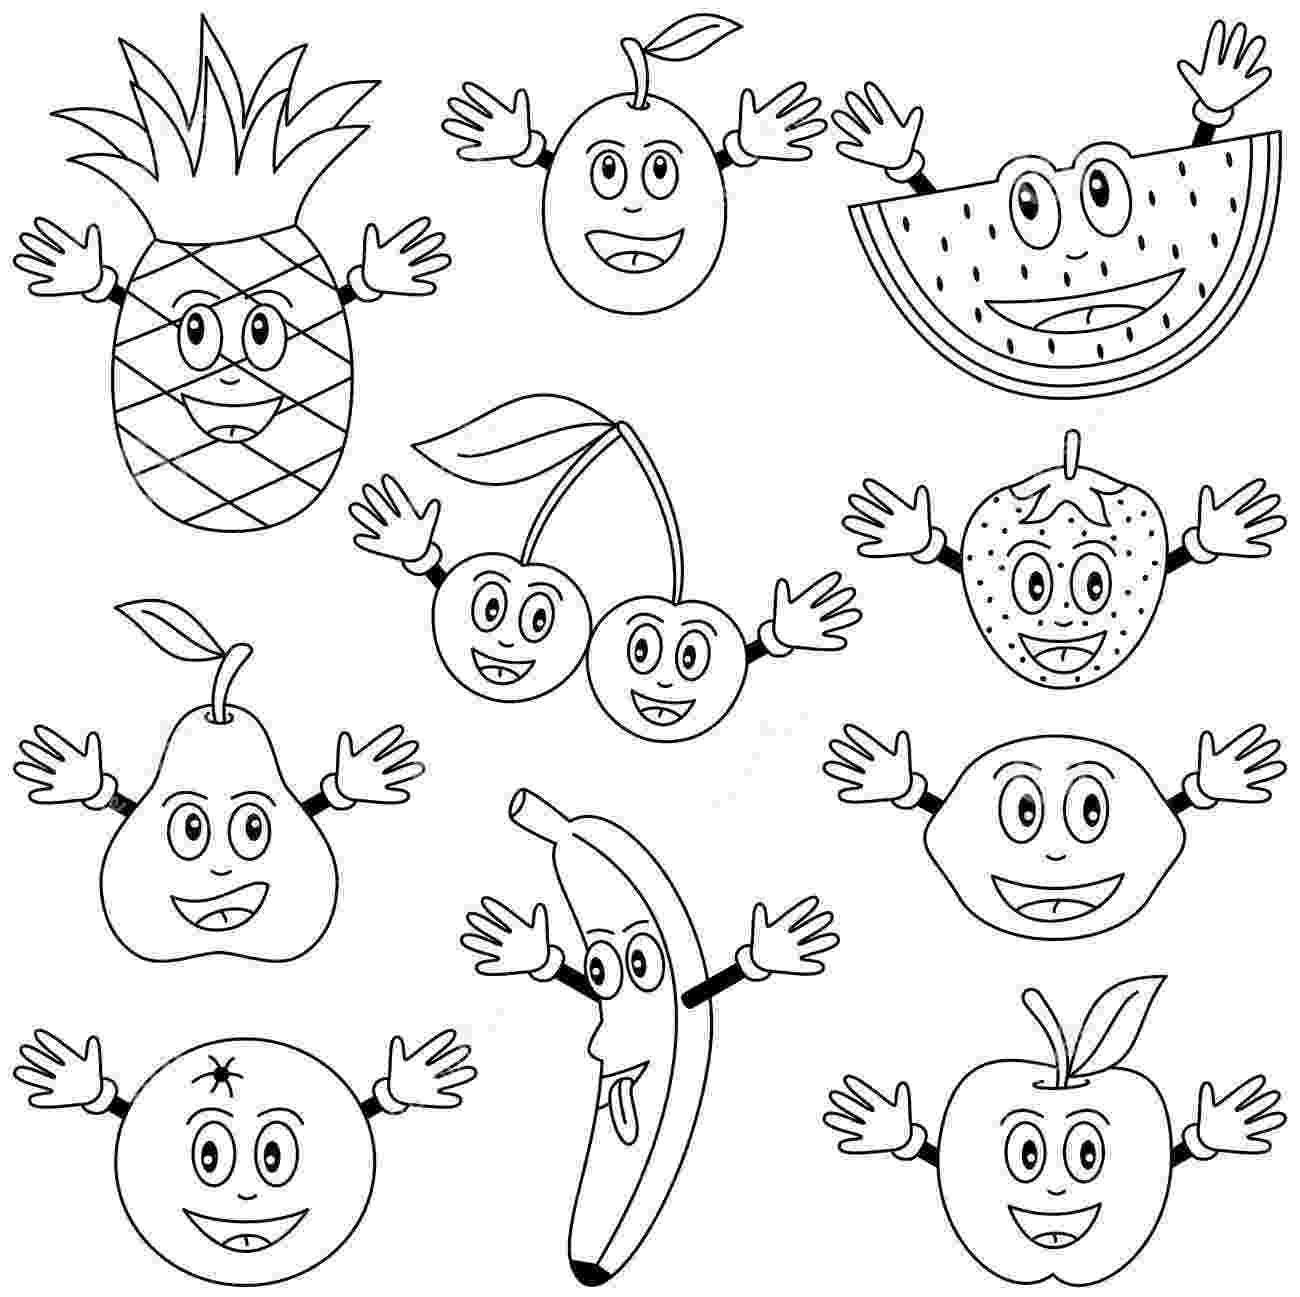 fruit coloring sheets cartoon fruits coloring pages crafts and worksheets for sheets coloring fruit